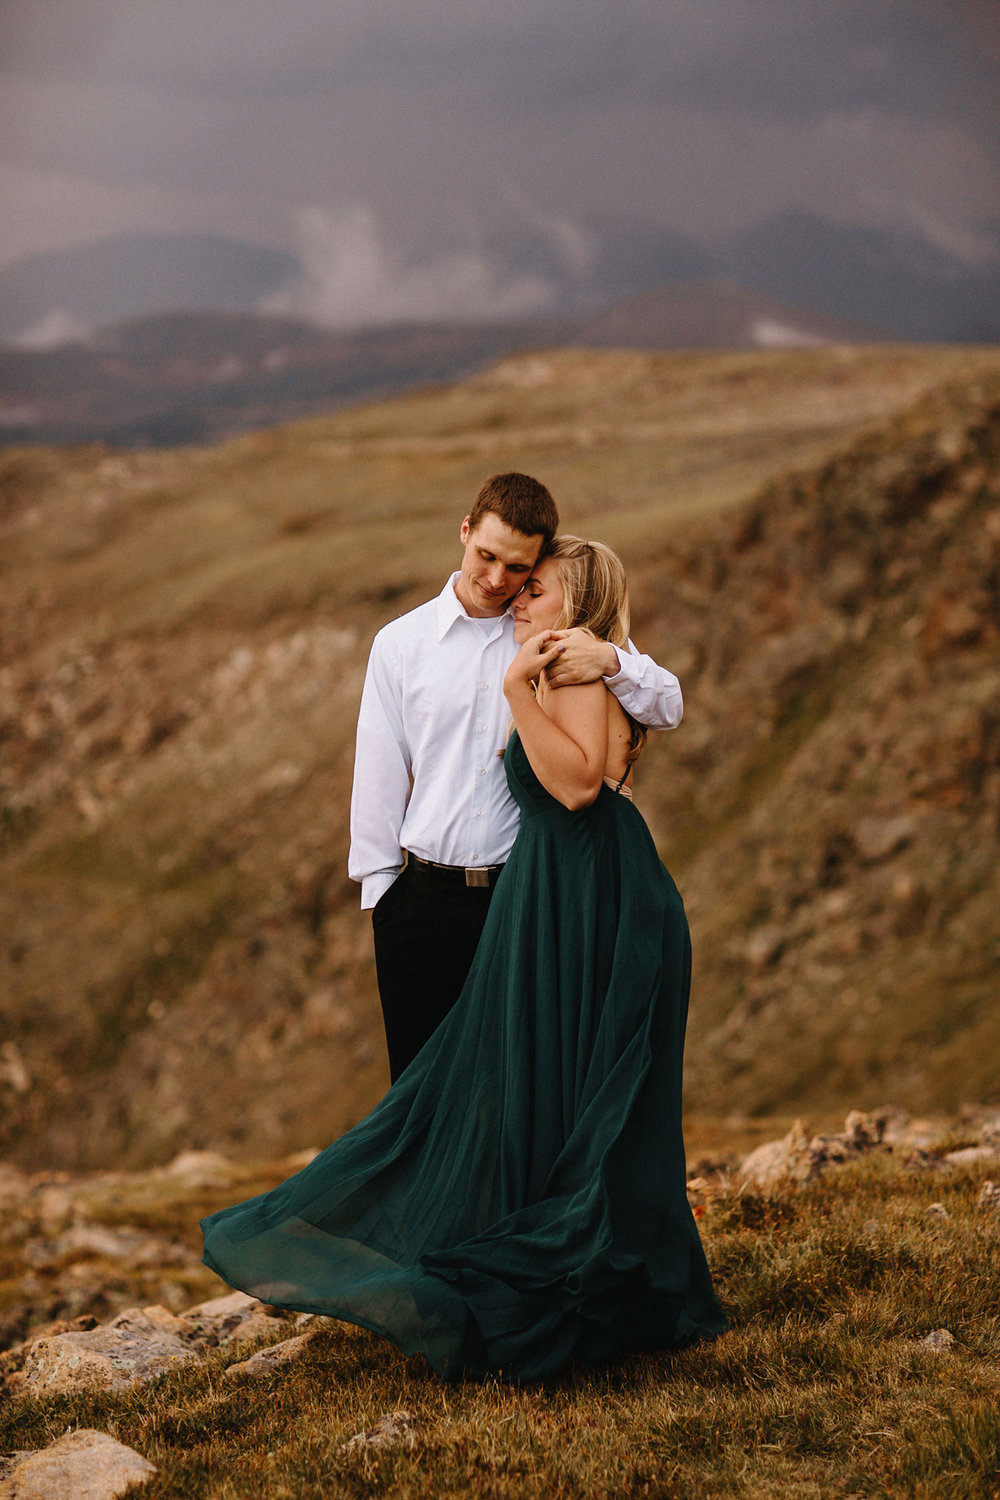 Rocky Mountain Engagement National Park Engaged Photos Wedding Elopement Portrait Mountains Trail Ridge Rd Peak Alpine Dress Lulus Rules Permit Photo Adventure Love Couples Destination Liz Osban photography Cheyenne Wyoming14.jpg